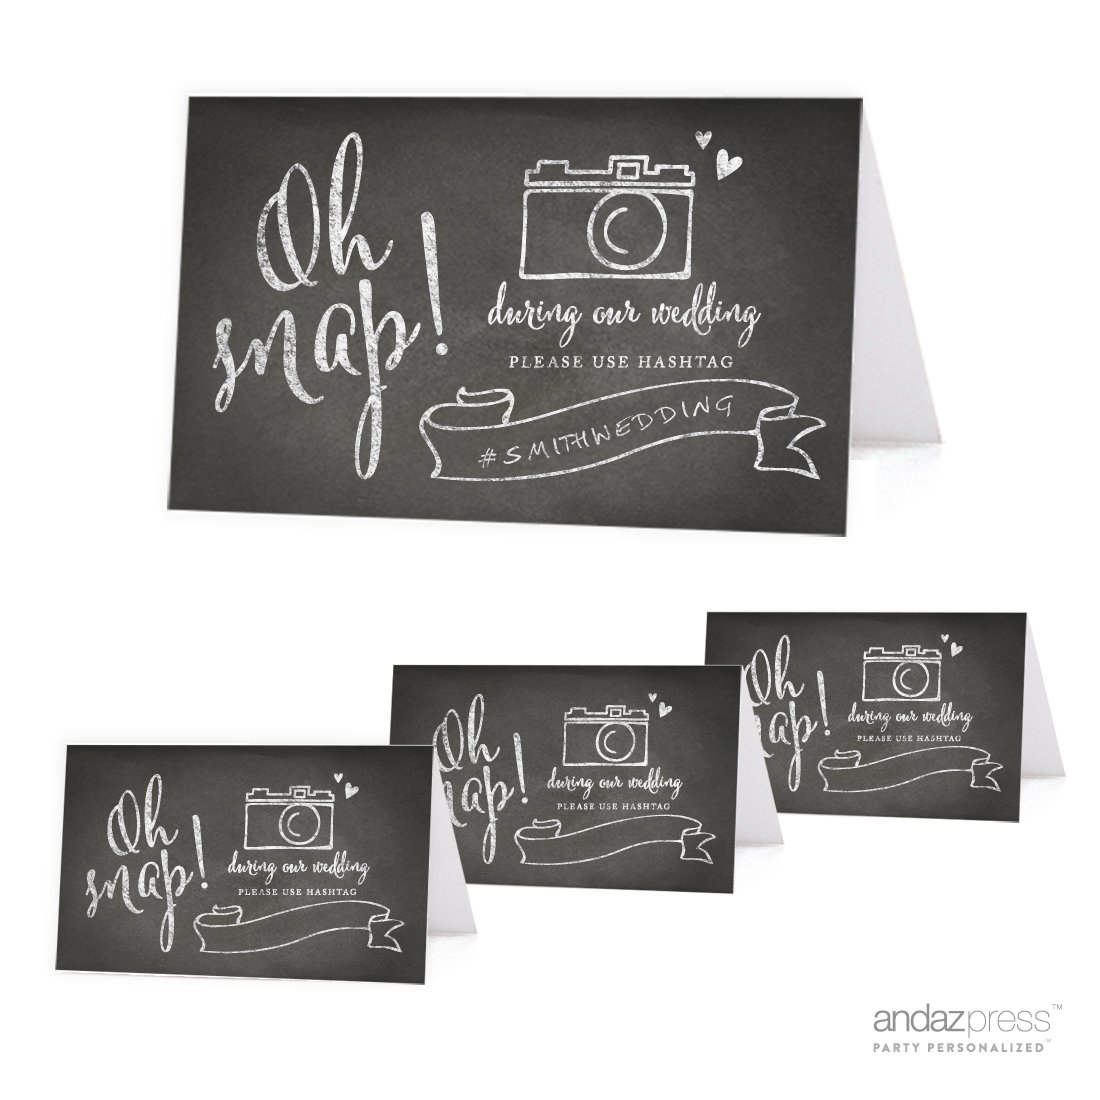 Andaz Press Table Tent Place Cards on Perforated Paper, Vintage Chalkboard Print, Oh Snap! During our Wedding, Please Use # Hashtag Photo Sign for Instagram, Facebook, Twitter, and Social Media Photographs, 20-Pack, For Bridal Shower, Engagement, Wedding